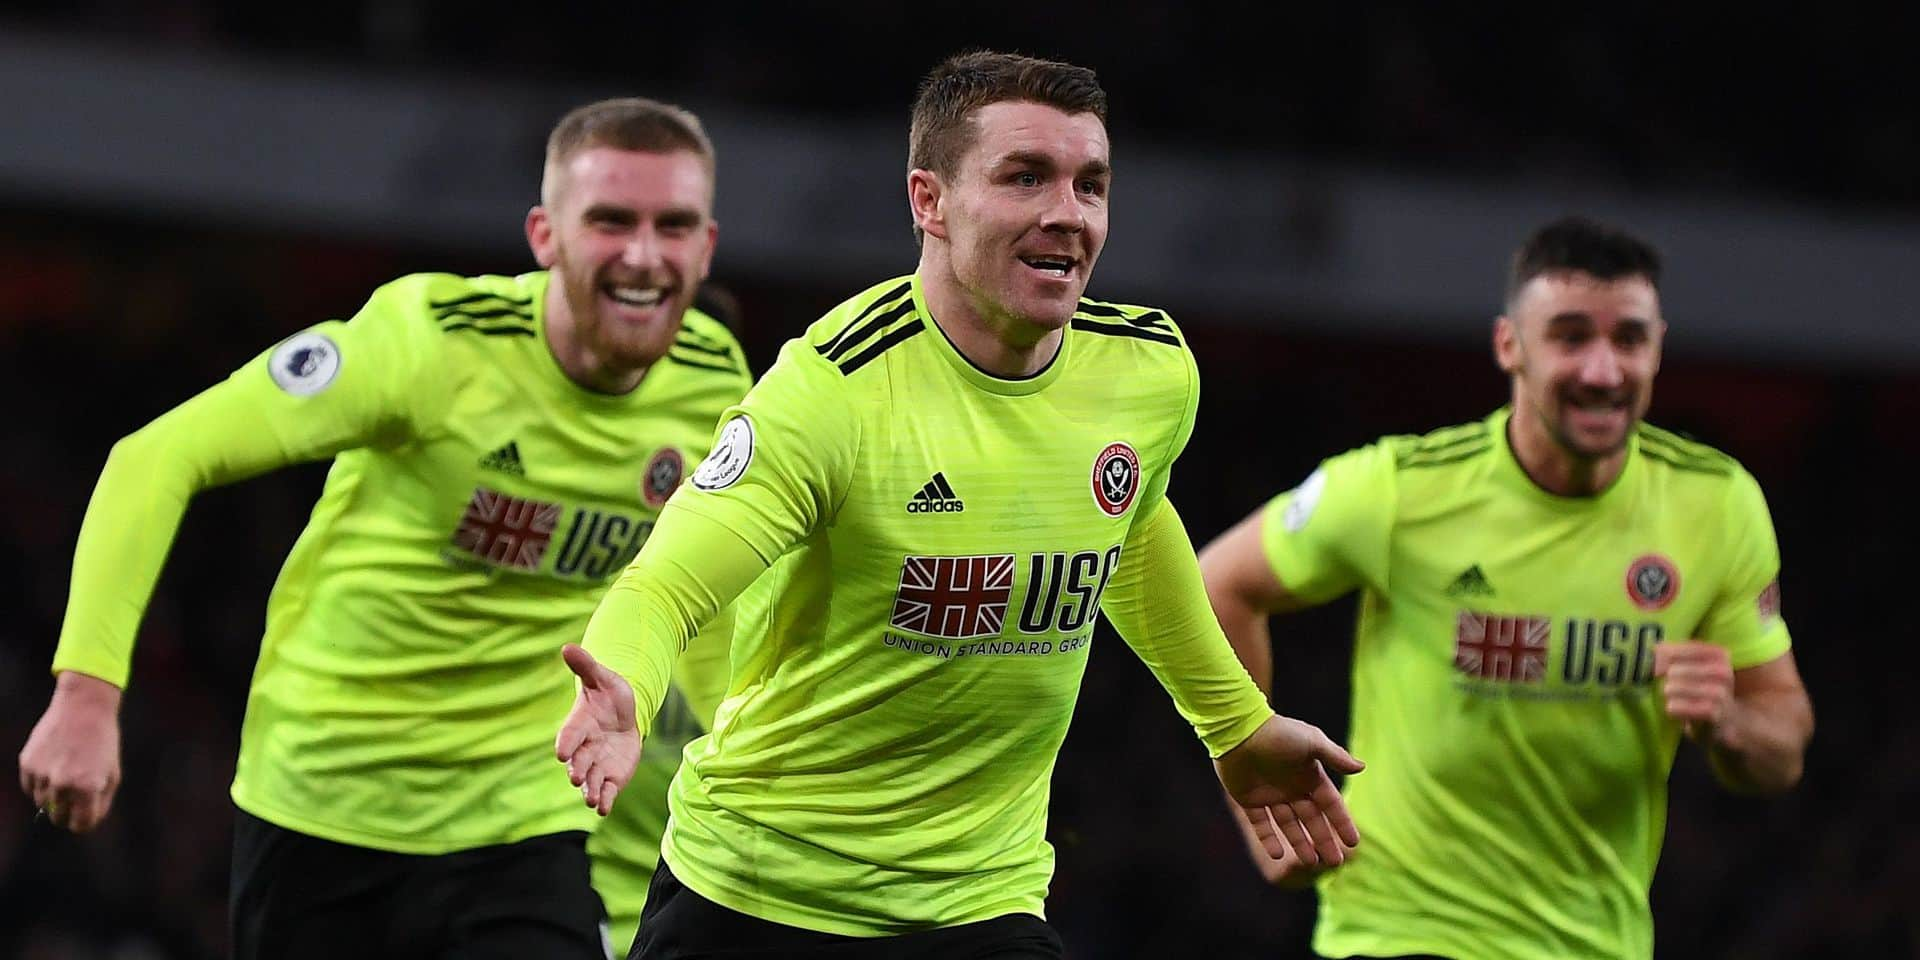 Sheffield United: la délicieuse revanche de John Fleck